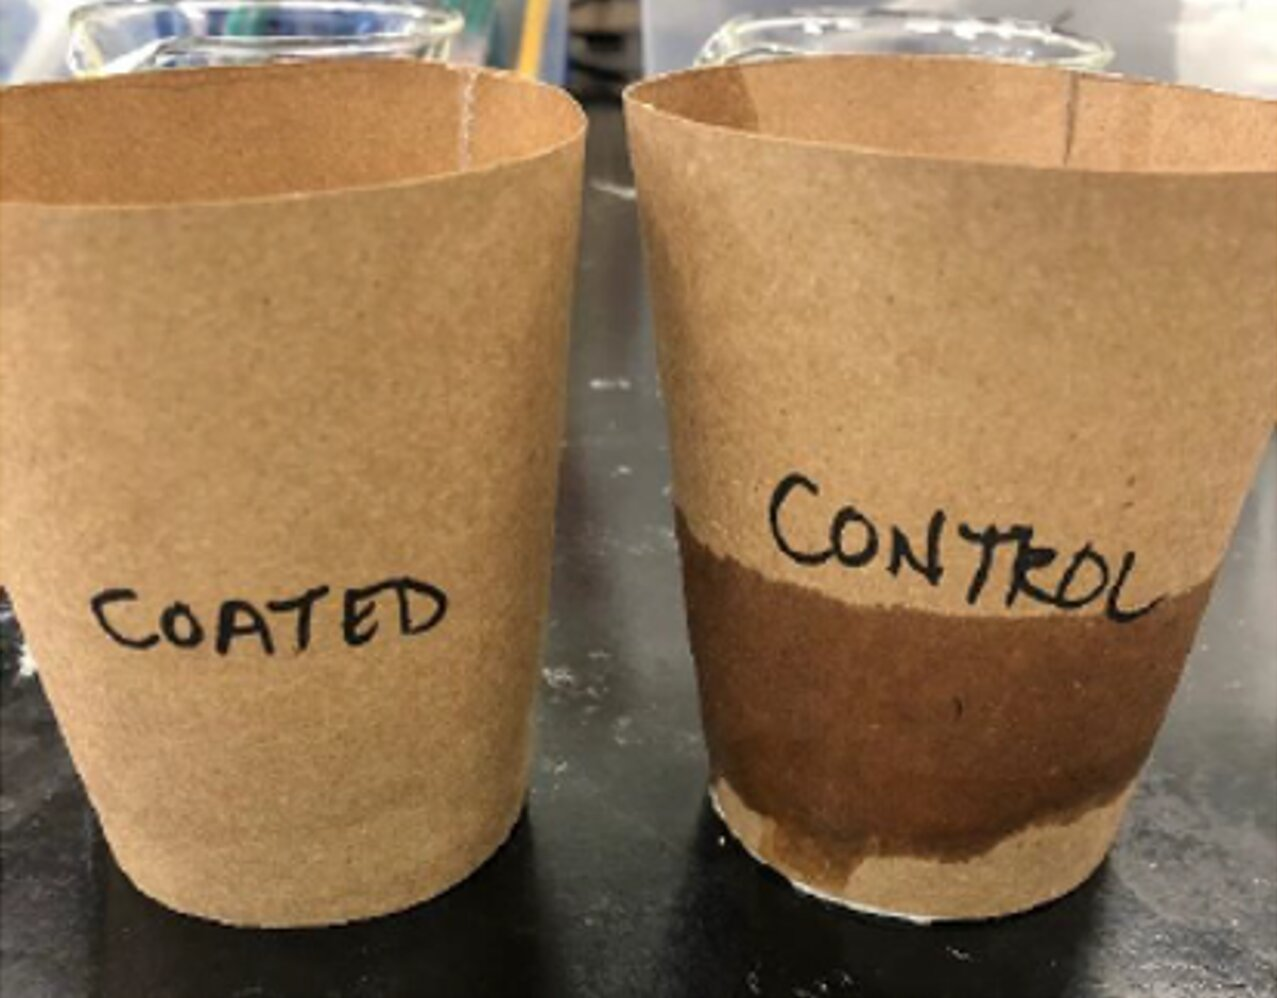 Paper without the microplastics: An economical and ecofriendly coating